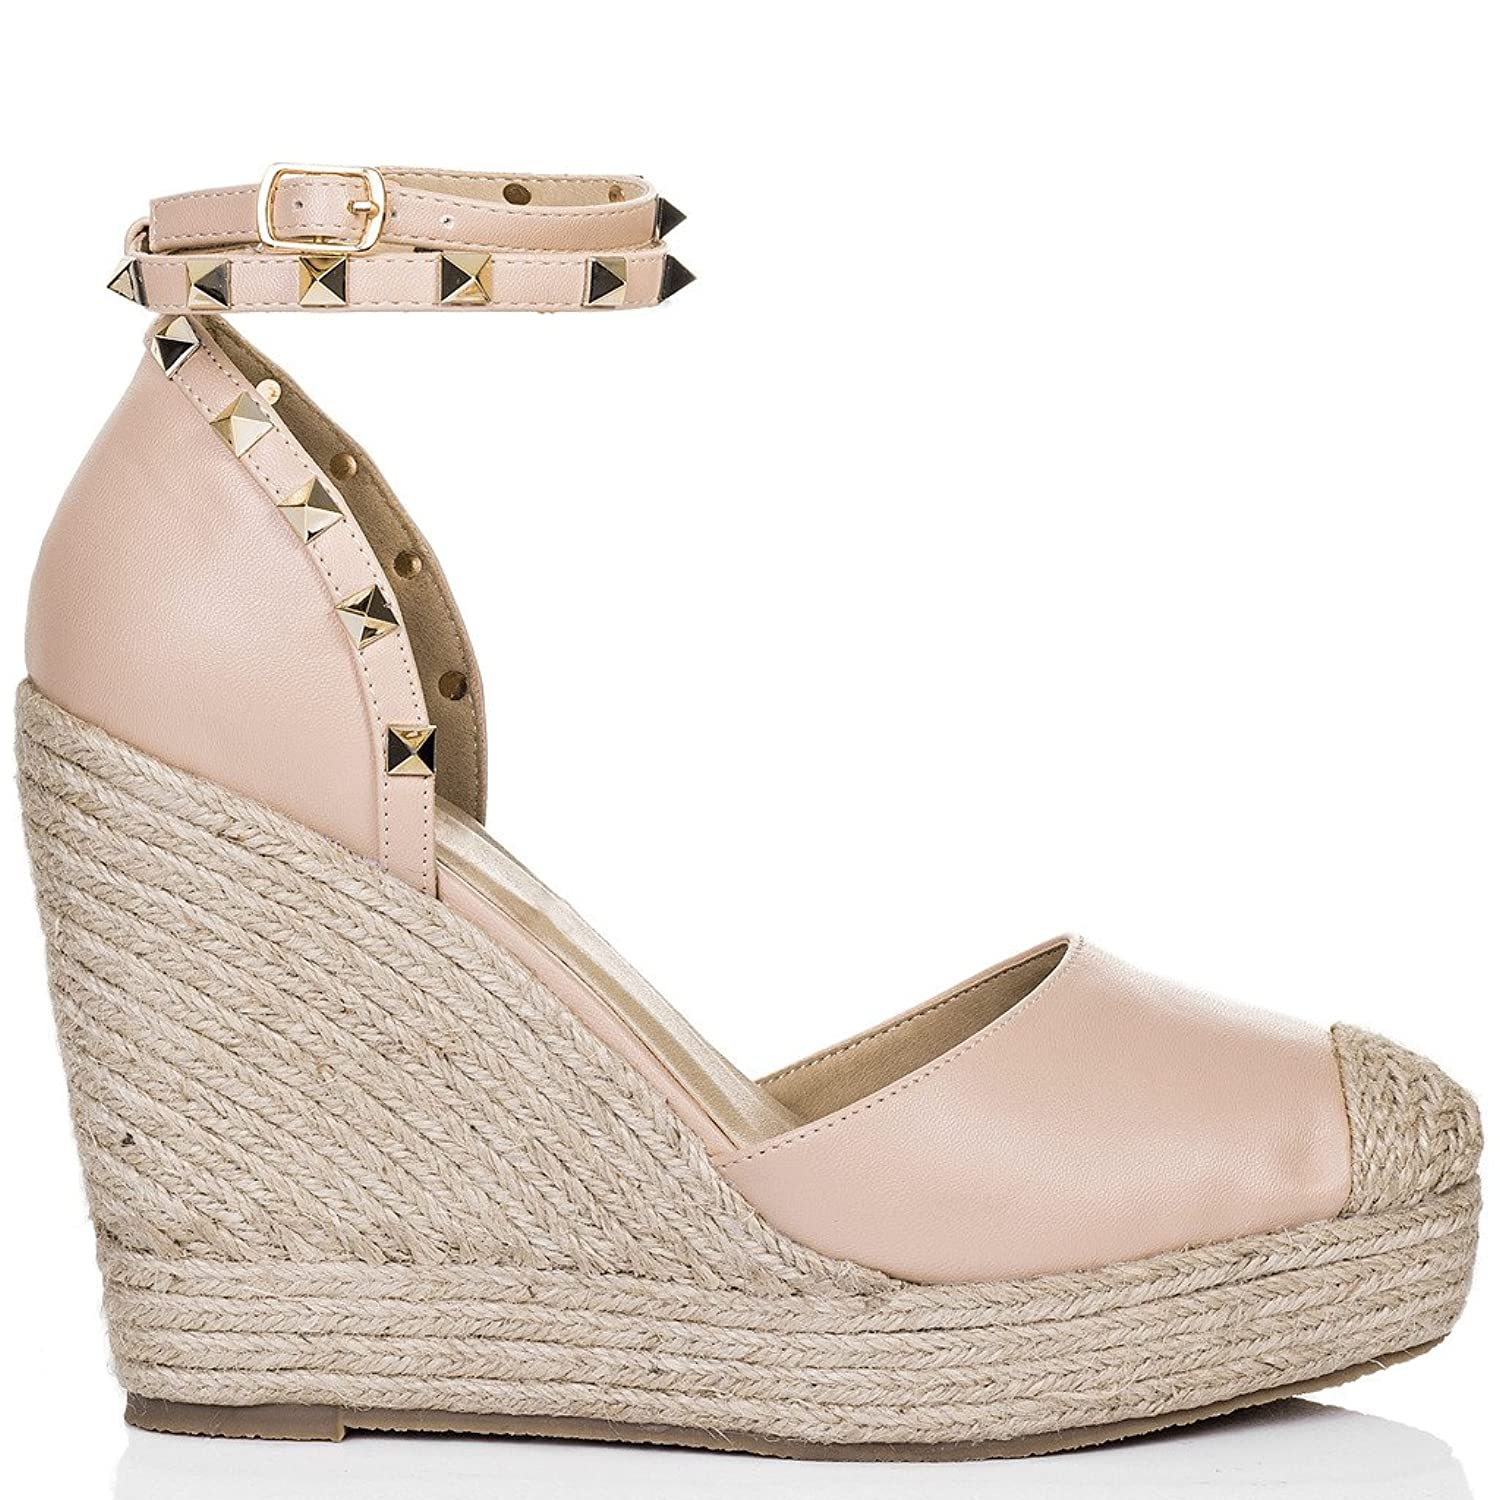 619000eaa2d8 SPYLOVEBUY TANAMI Women s Platform Stud Wedge Heel Barely There Espadrille  Sandals Shoes  Amazon.co.uk  Shoes   Bags